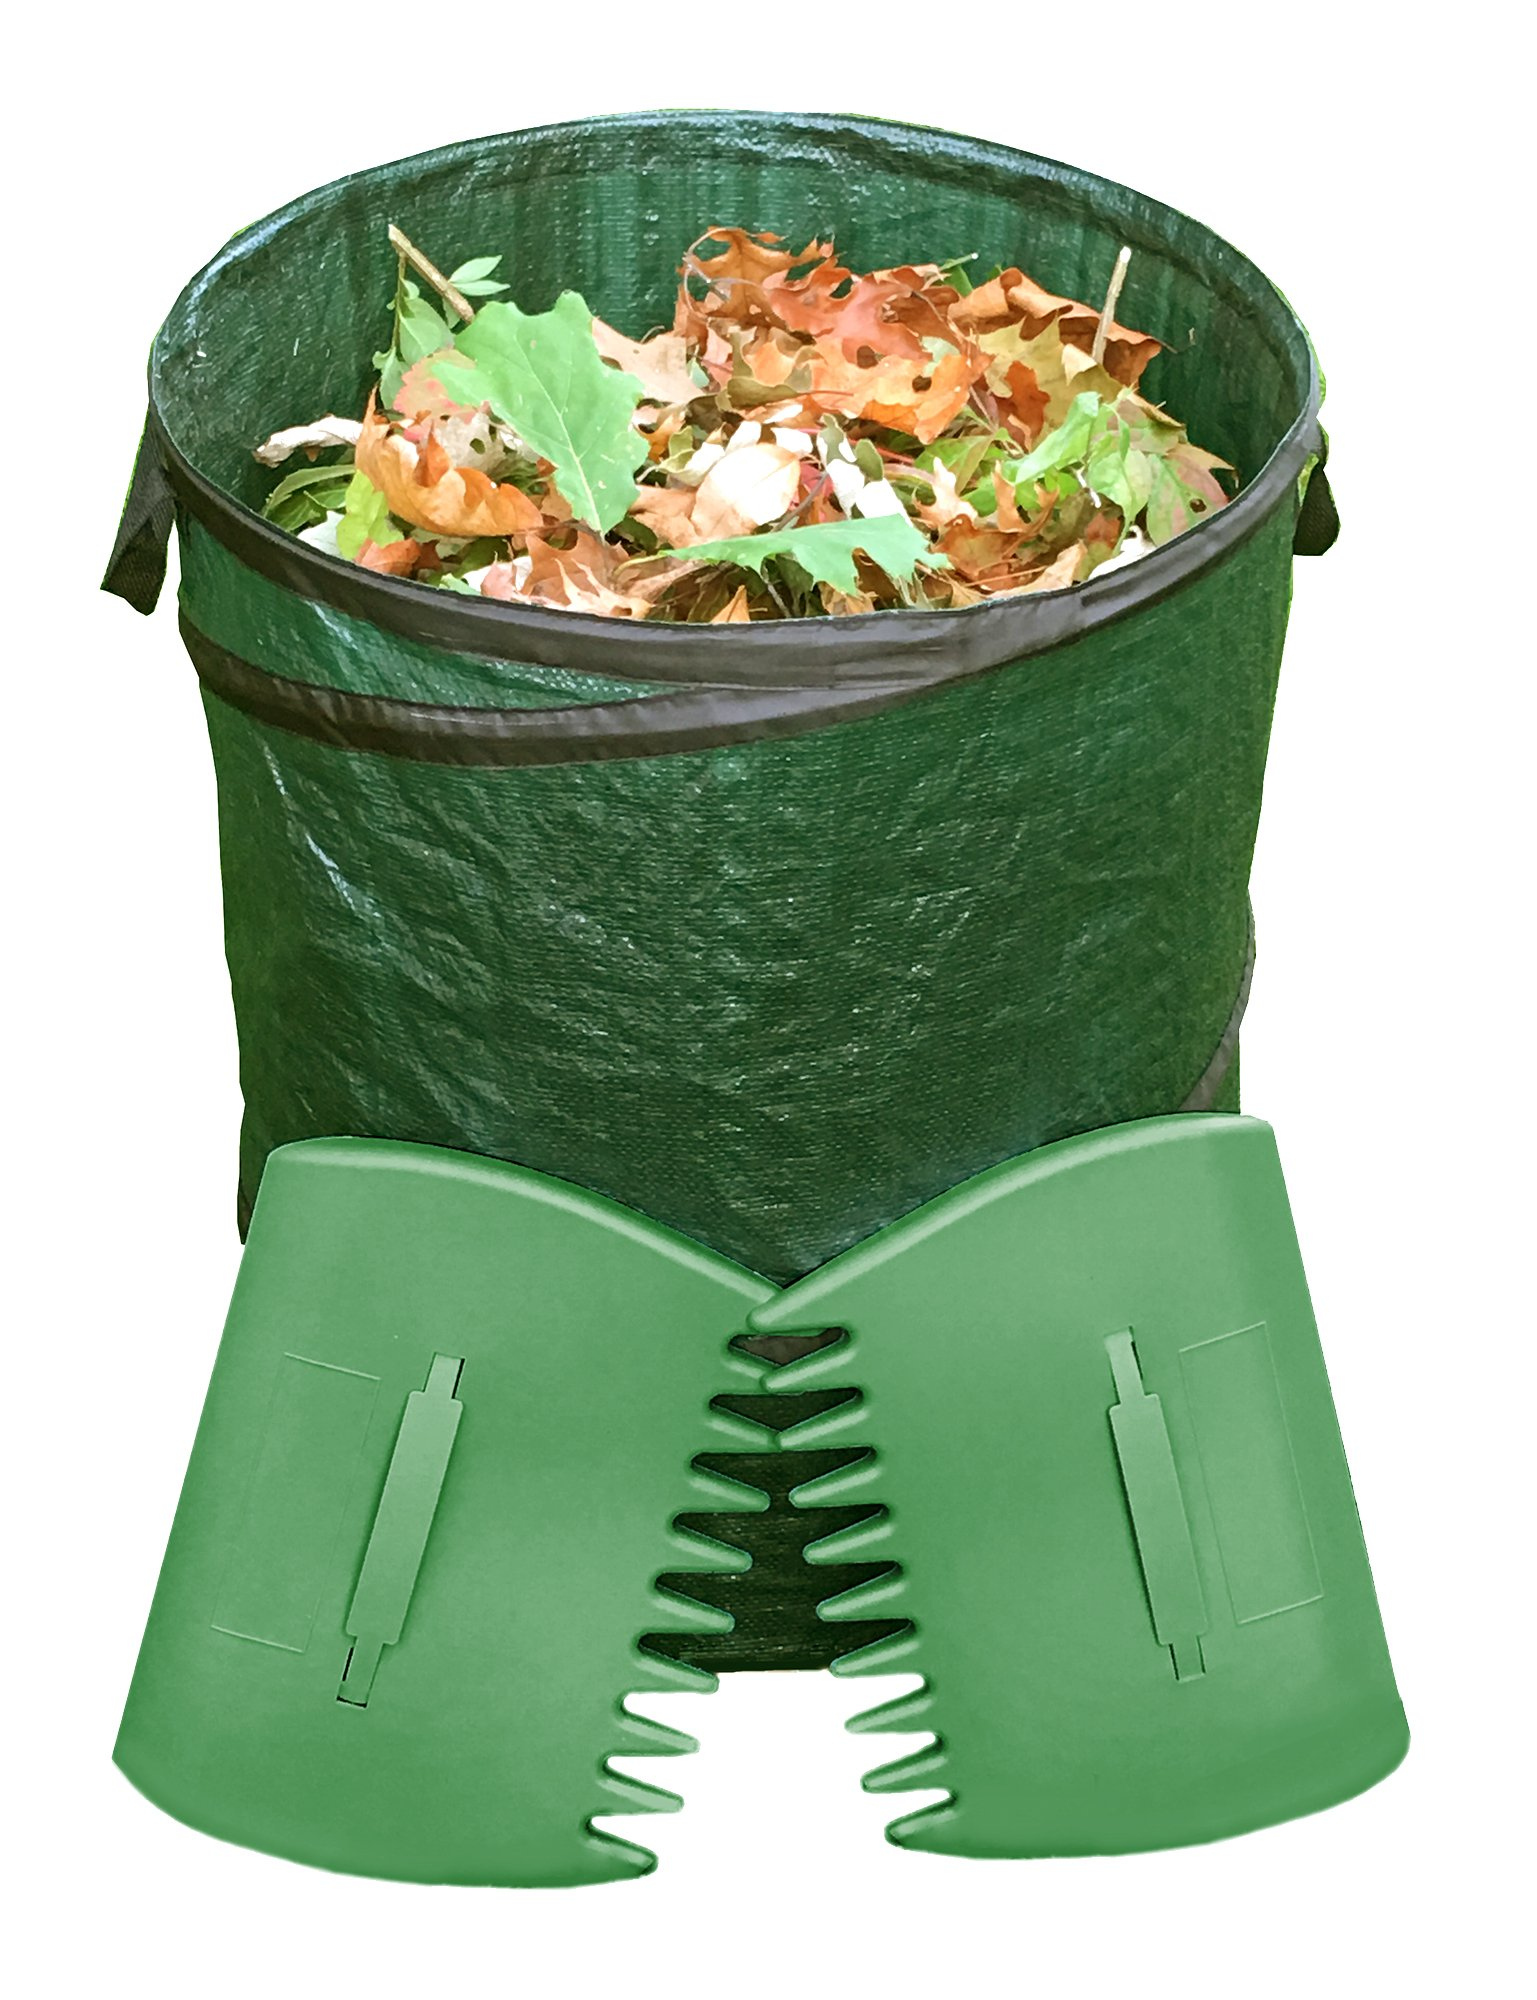 Lawn Bags Pop Up Leaf Bag with 2 Leaf Grabbers or Scoops - Heavy Duty 32 Gallon Reusable Collapsible Garden Bag or Yard Waste Container by Fern and Foliage by Fern and Foliage